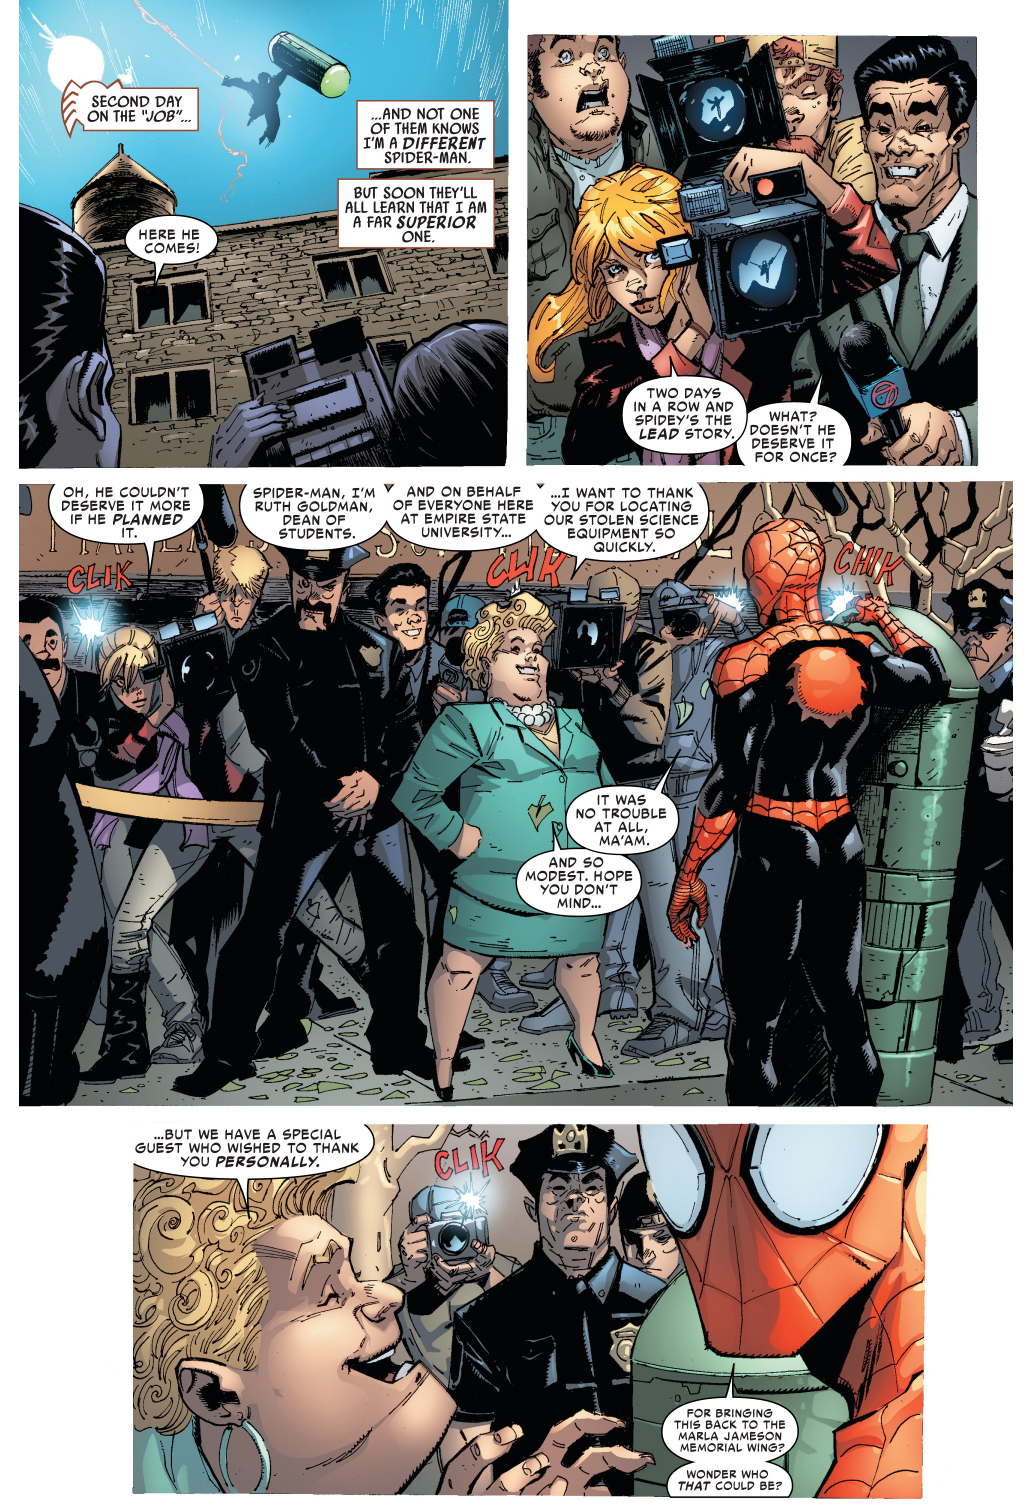 Jonah jameson quotes quotesgram - Jonah Jameson Approves Of Superior Spider Man